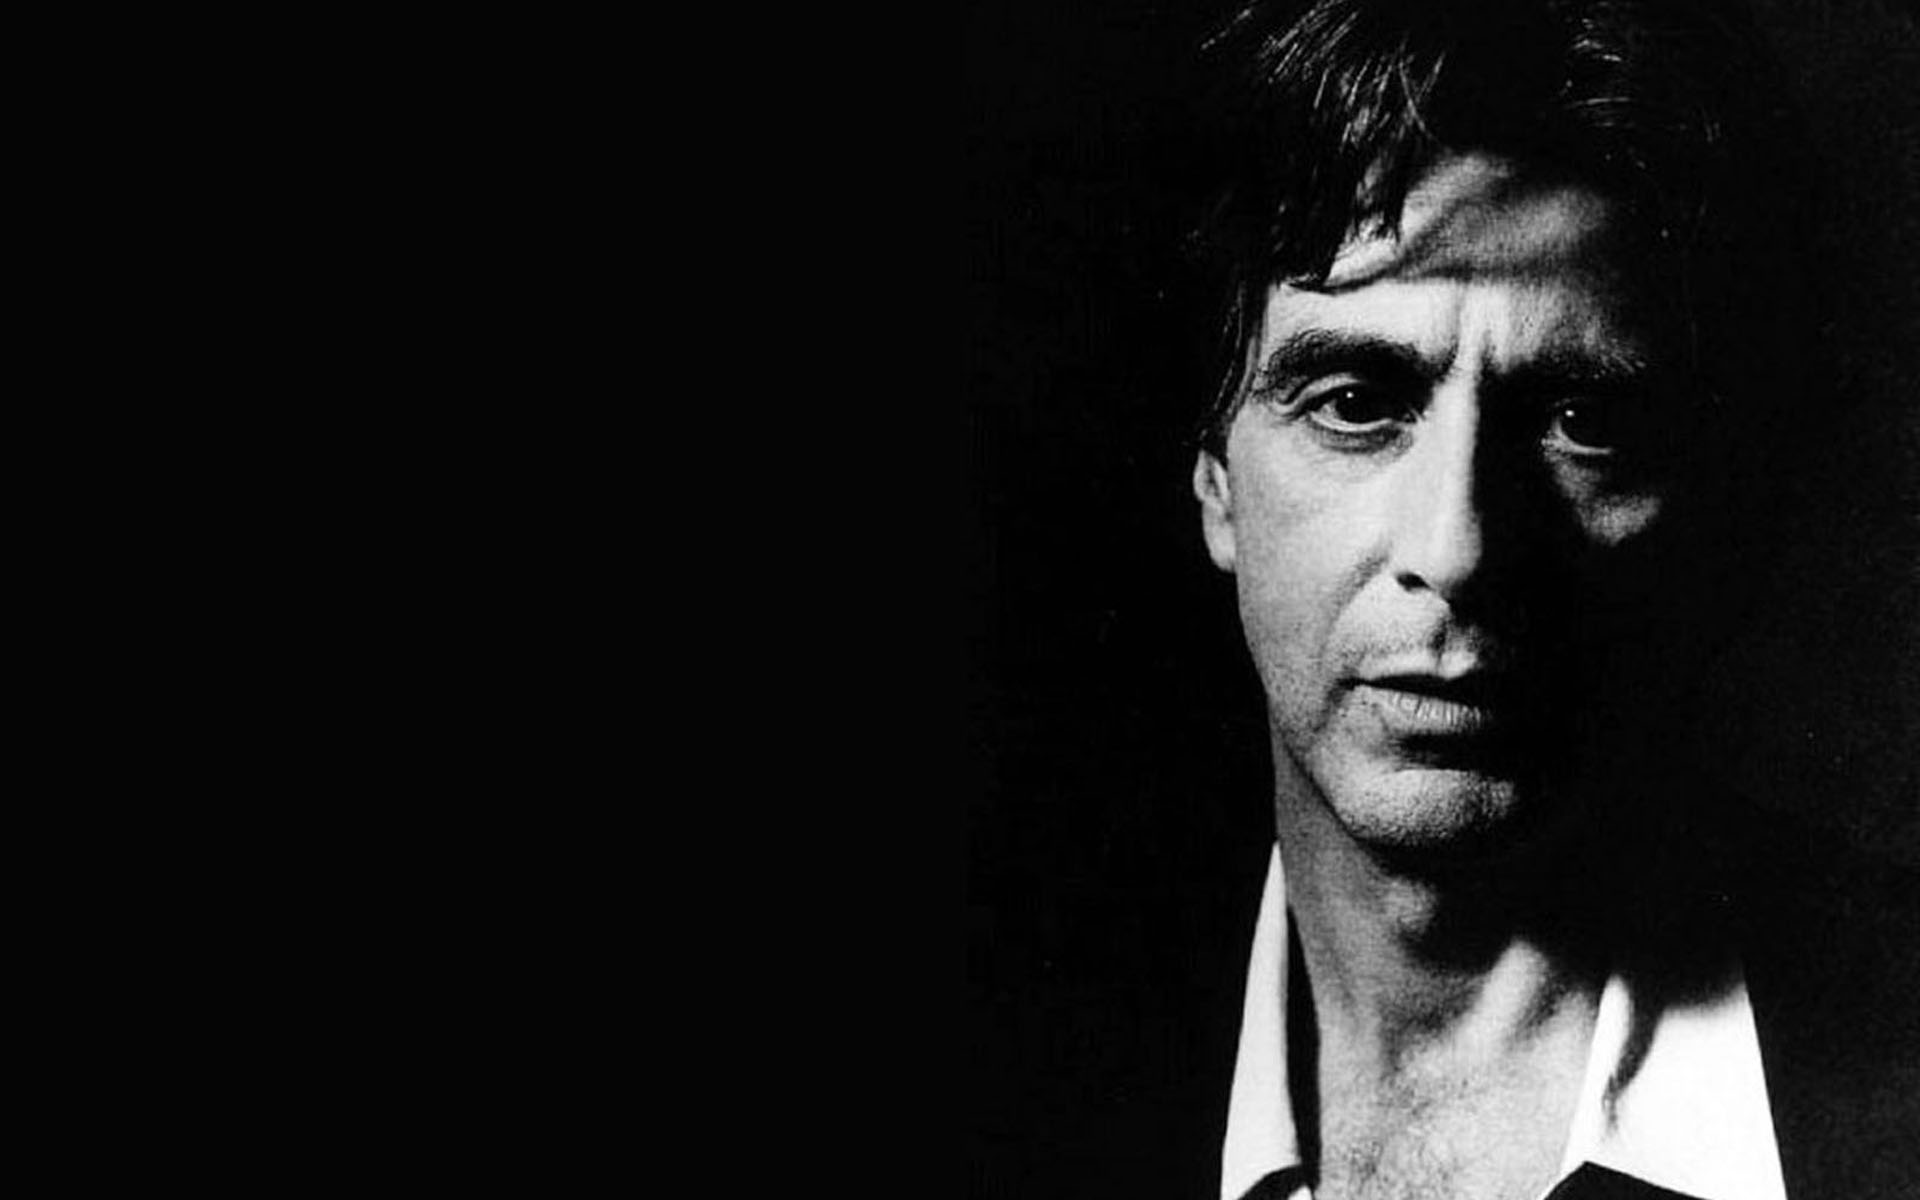 Al Pacino Al Pacino Wallpapers High Resolution And Quality Download